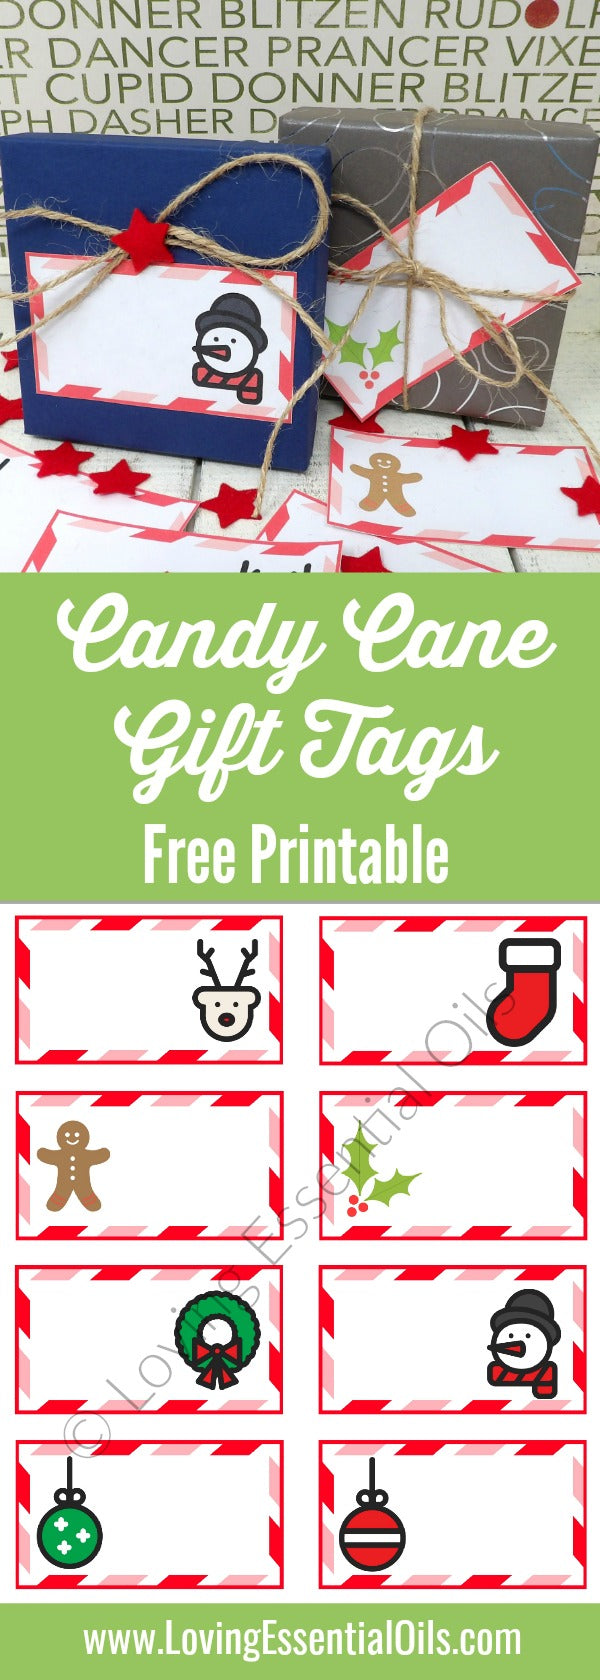 Free printable gift tags for christmas candy cane theme loving free printable gift tags for christmas candy cane theme by loving essential oils negle Gallery